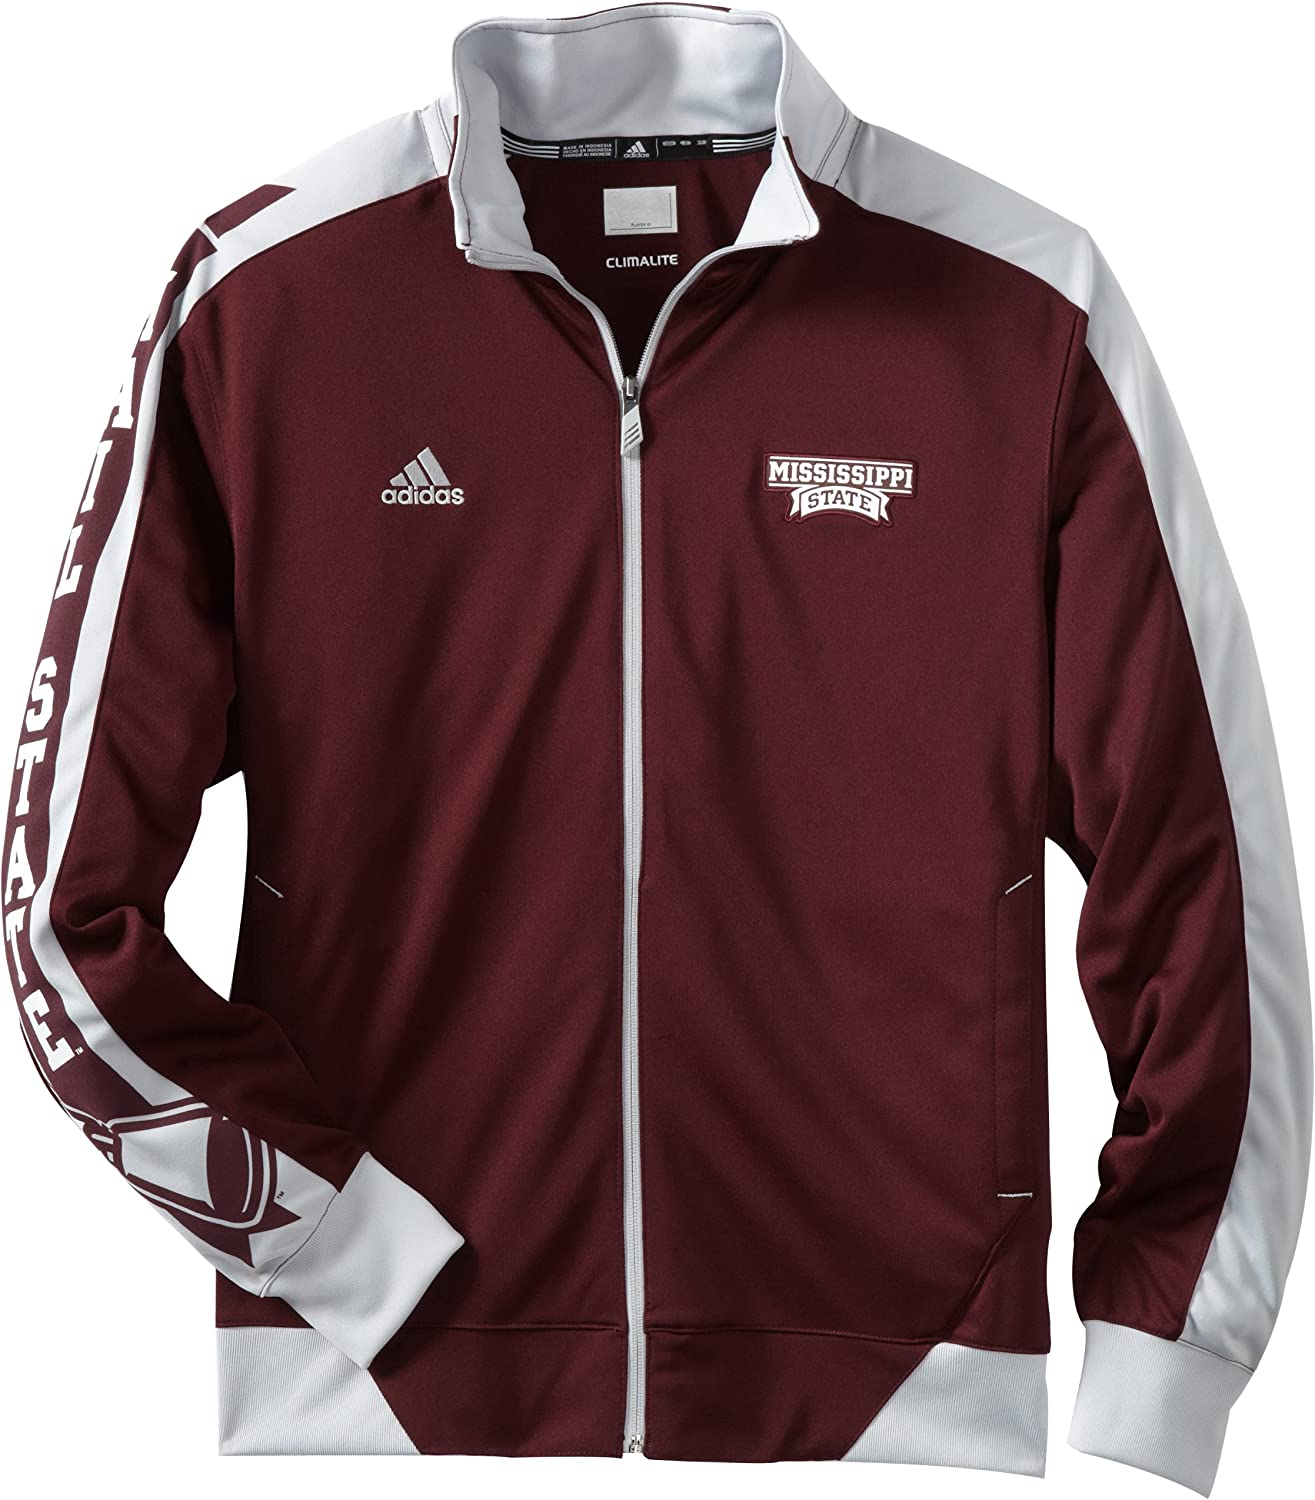 NCAA Mississippi State Bulldogs Men's Warm-Up Sideline J Super sale period Max 64% OFF limited Swagger